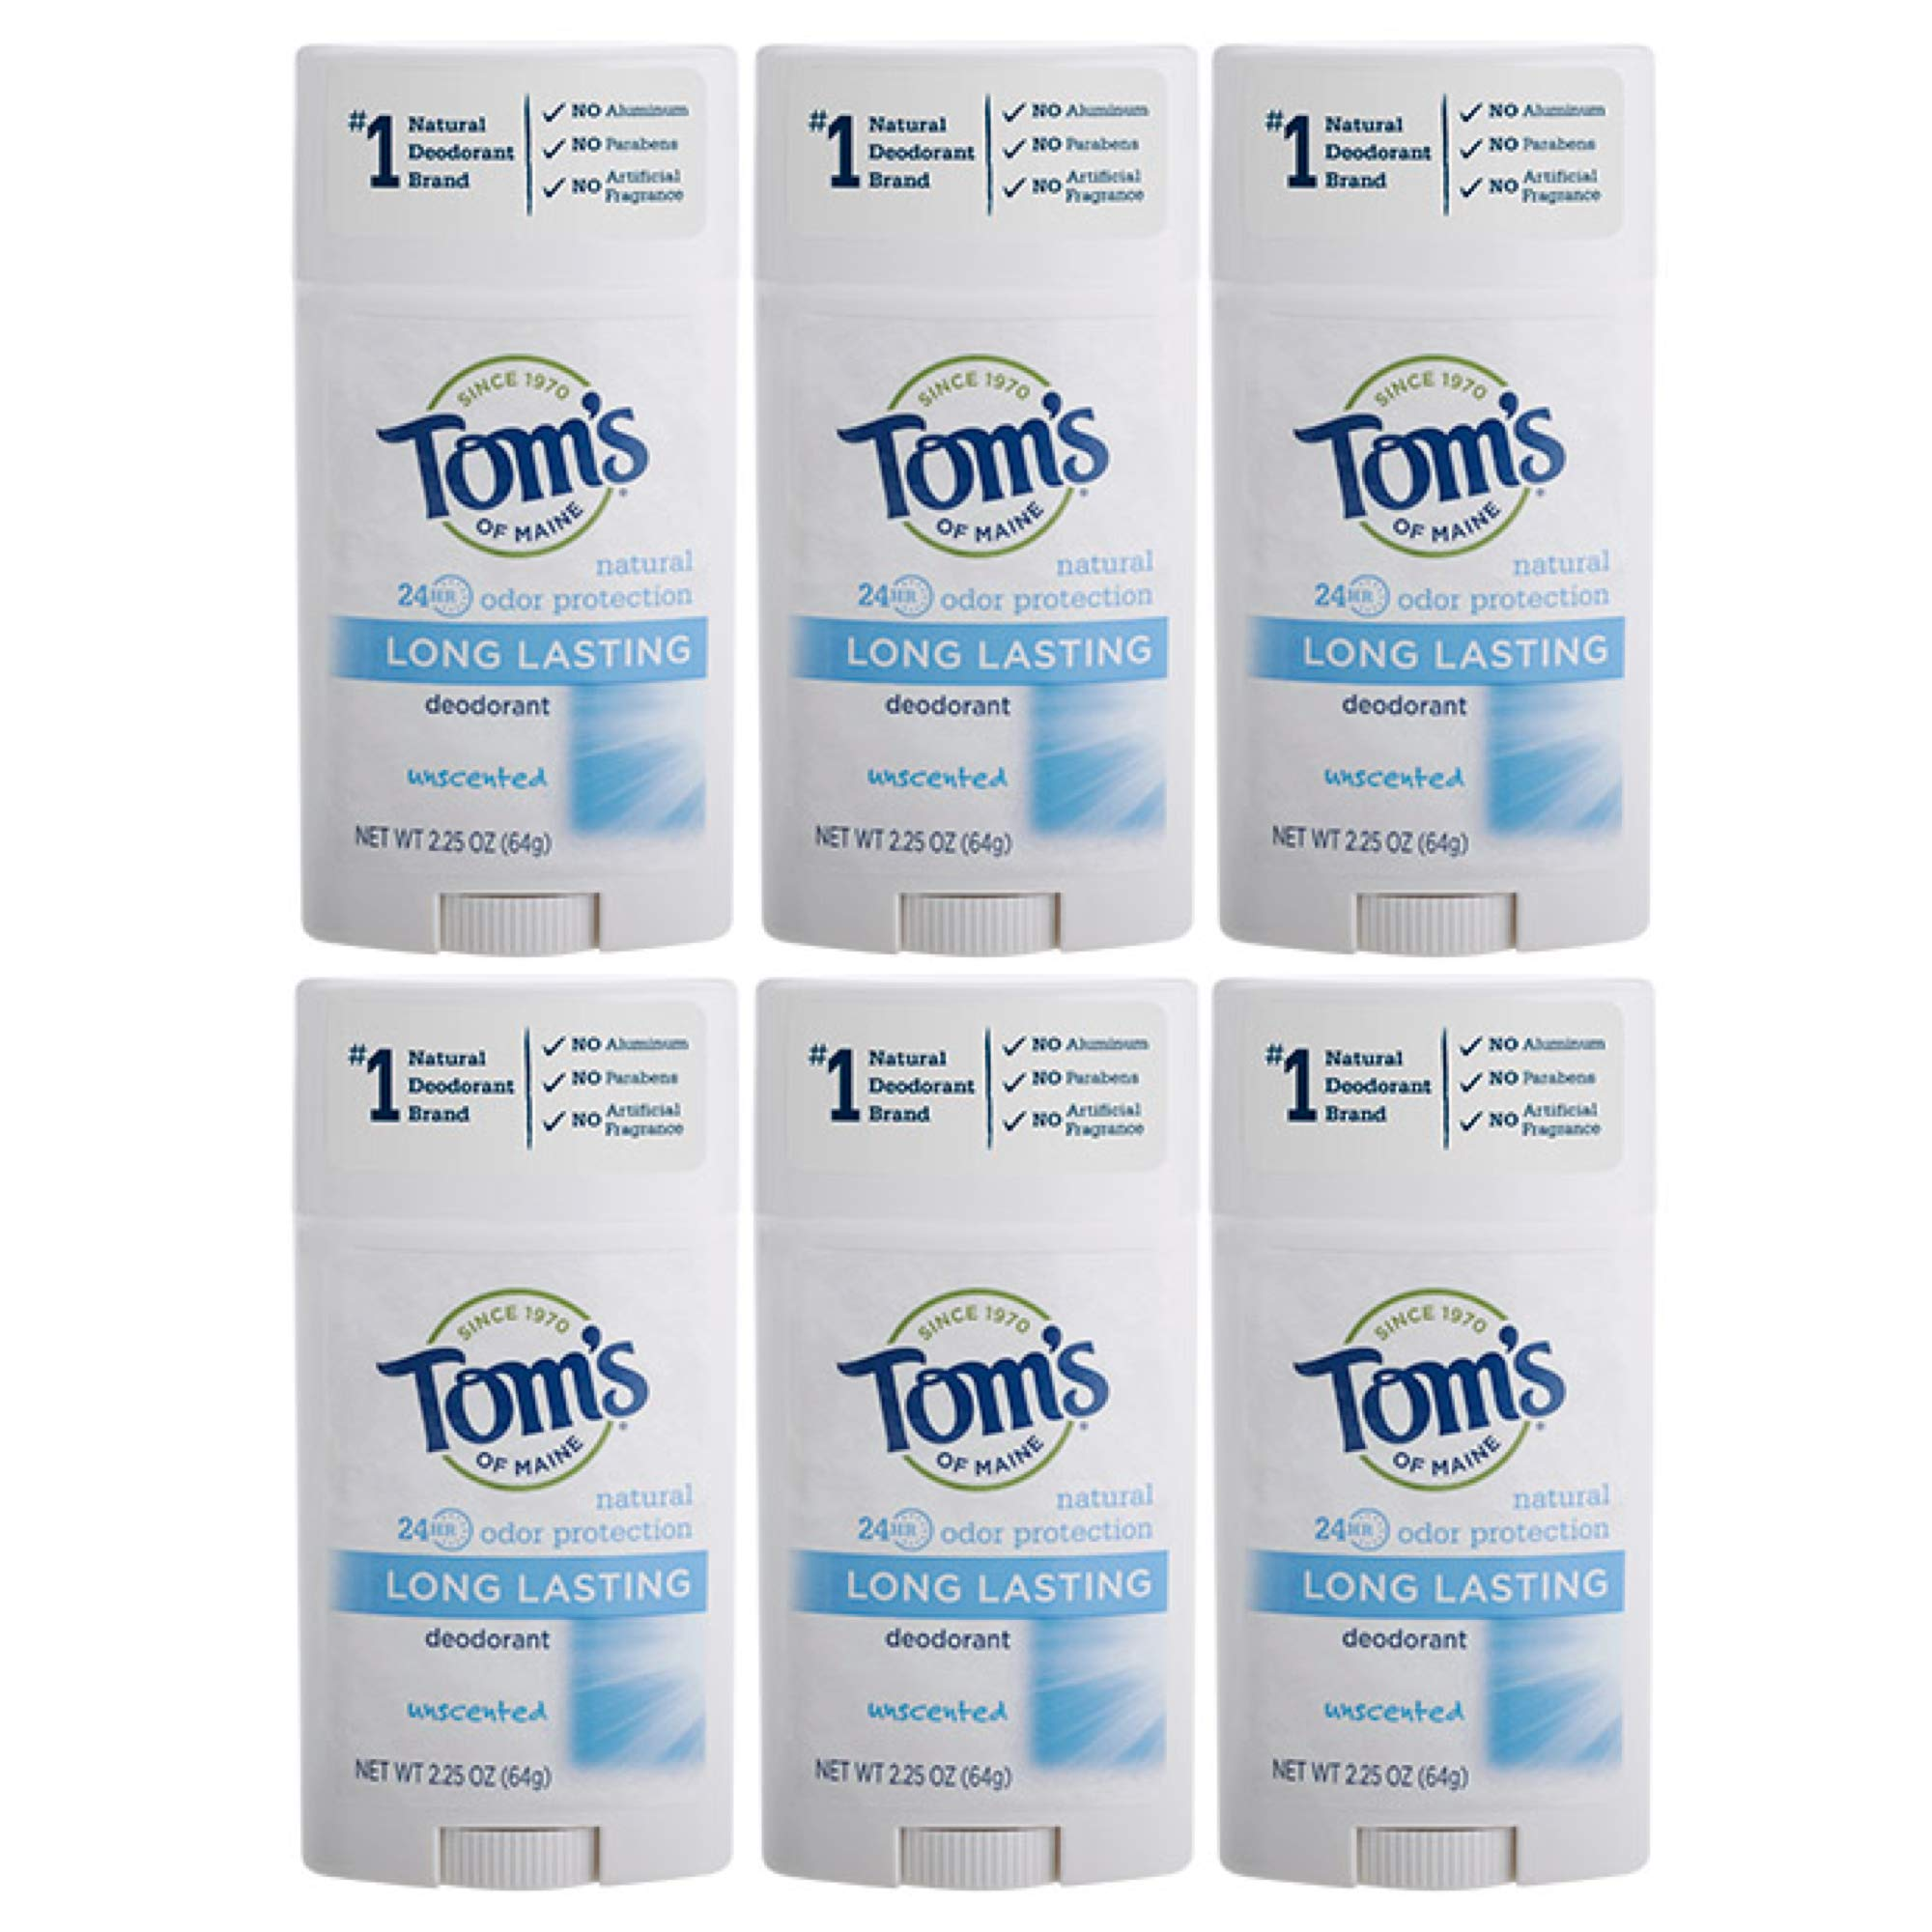 Tom's of Maine Natural Deodorant Stick, Unscented, 2.25 Ounce, Pack of 6 by Tom's of Maine